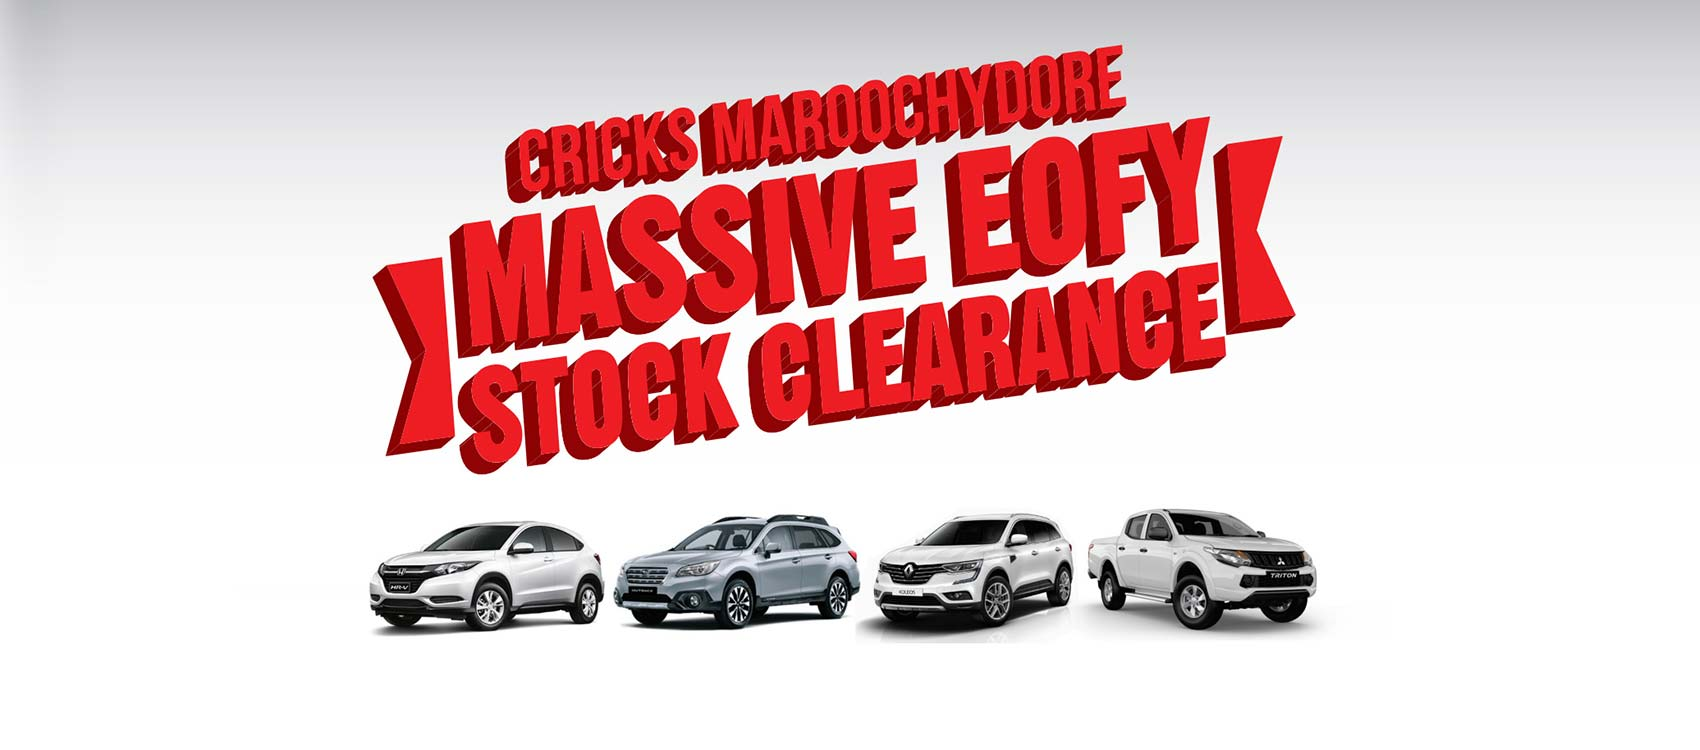 Cricks Maroochydore Massive EOFY Stock Clearance